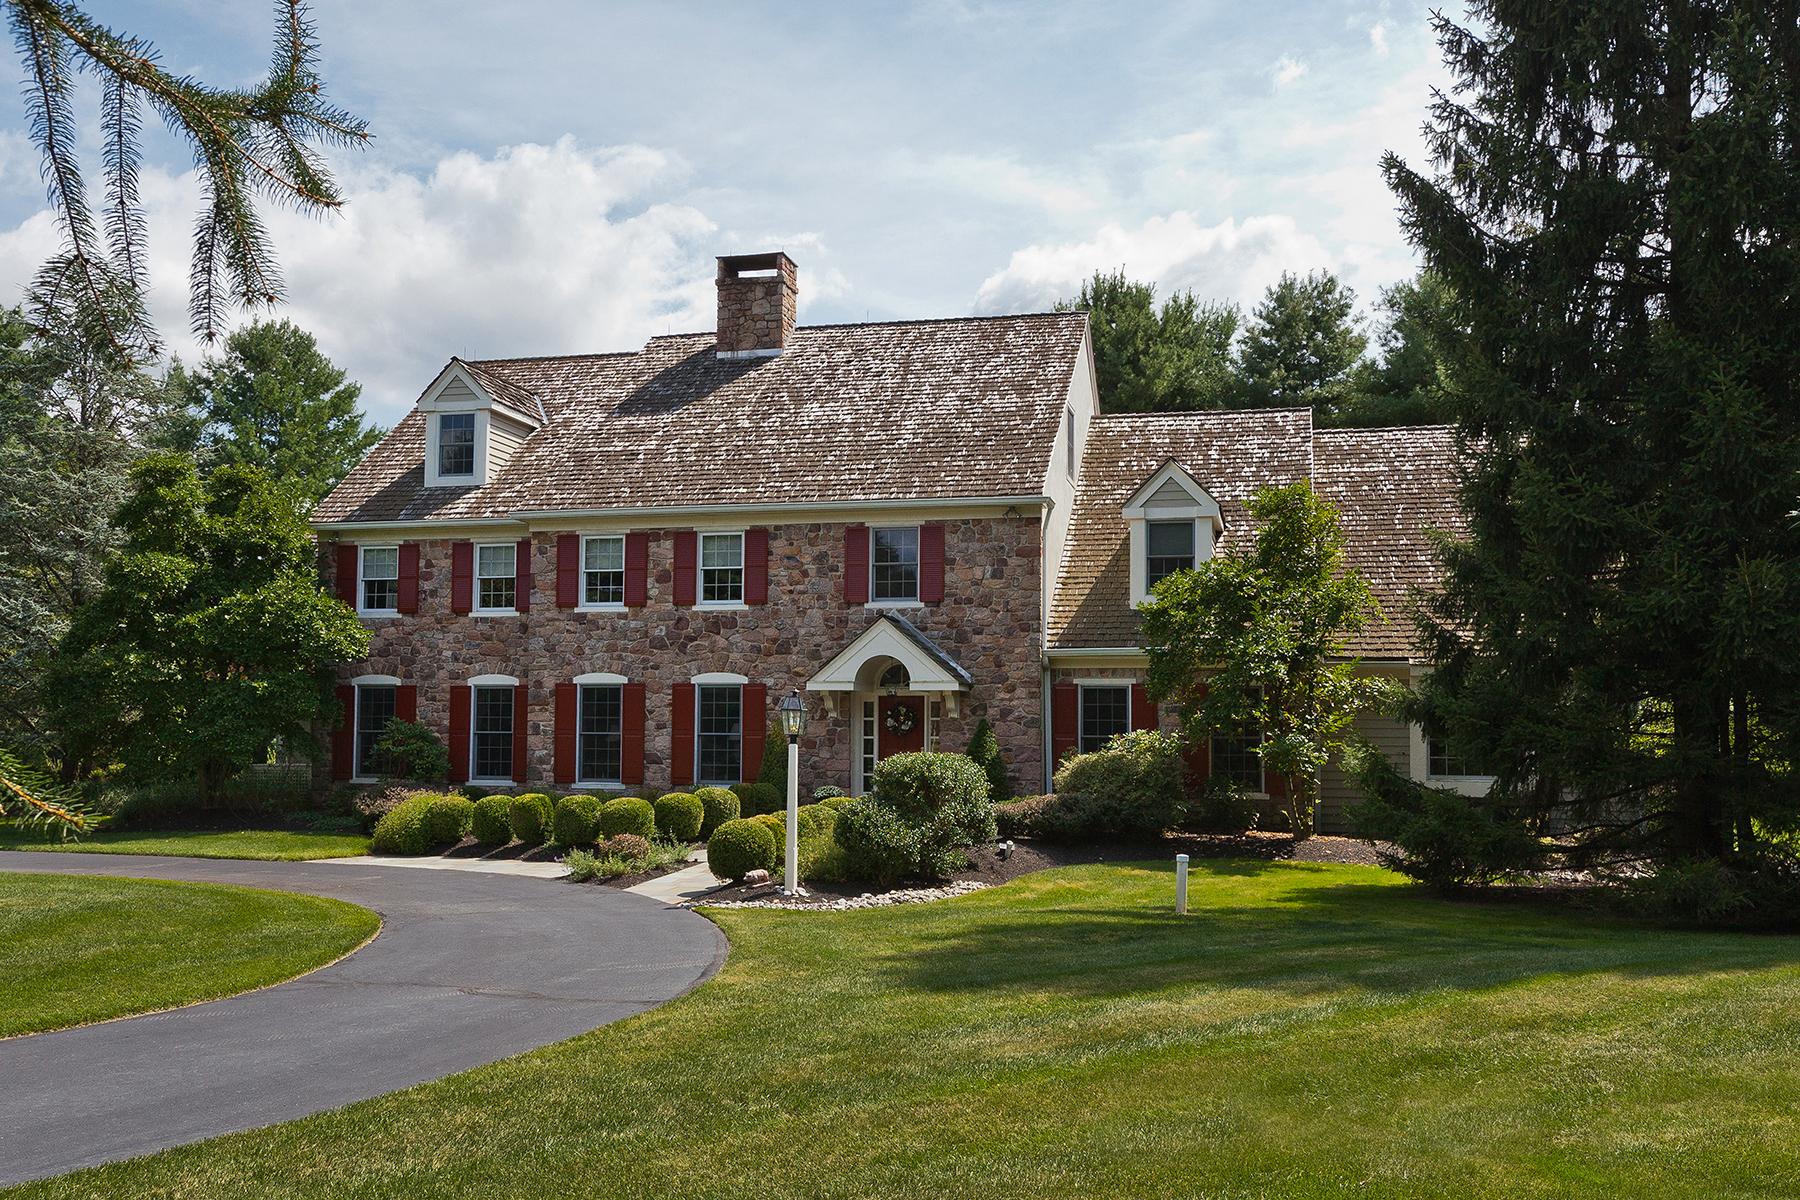 Single Family Home for Sale at New Hope, PA 9 Bellinghamshire Place New Hope, Pennsylvania 18938 United States